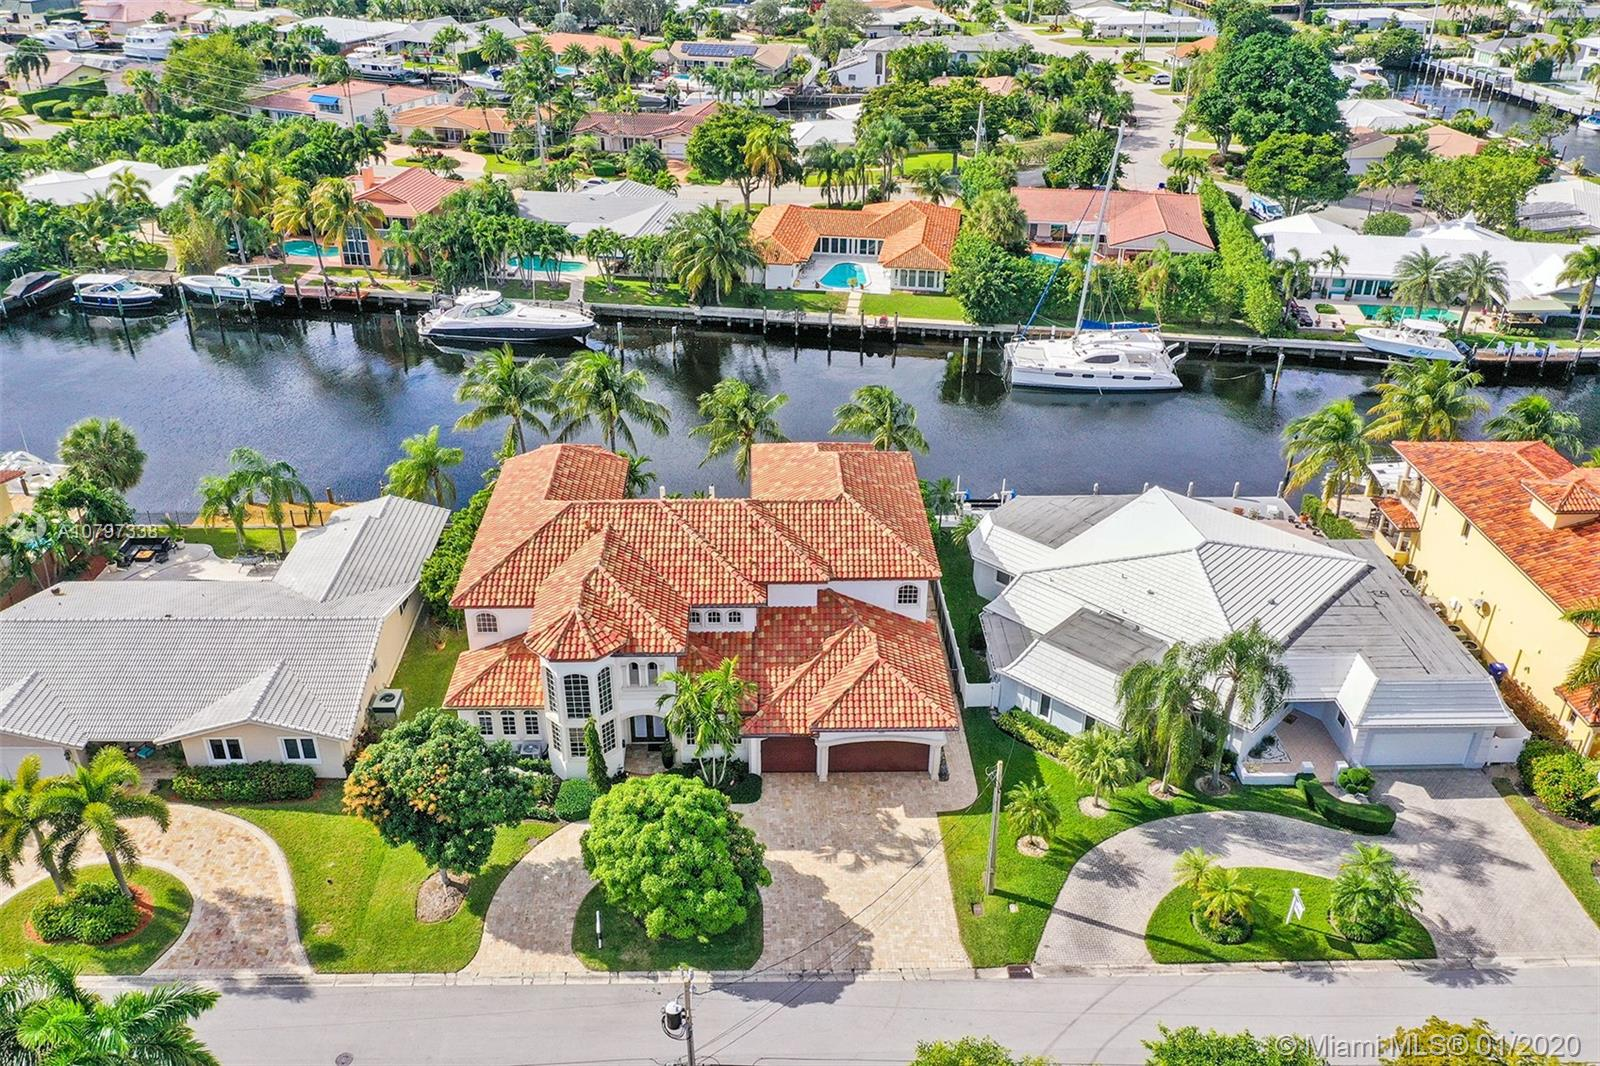 """MAGNIFICENT OCEAN ACCESS POOL HOME IN A HIDDEN POCKET OF EAST FORT LAUDERDALE CALLED """"THE LANDINGS."""" This custom built home with soaring high ceilings and panoramic water views is nothing short of impressive! 5 bedrooms/5 baths(2/2 downstairs and 3/3 upstairs)Enough room for the family, guests, and the Gatspy party! This one has it all including all impact windows and doors, Wolf Appliances, Marble counters and floors throughout, outdoor kitchen, 85 Ft of water front, full home generator, elevator, theater room, boat lift, covered loggia & private balconies add to this fine estate. Exceptional location for boaters as the canal is 140 FT wide and on a dead end perfect for turning any size vessel...and its 1 minute from Intracoastal and 0 boat traffic!!Literally a Steal!Fit a 75FT Yacht!"""